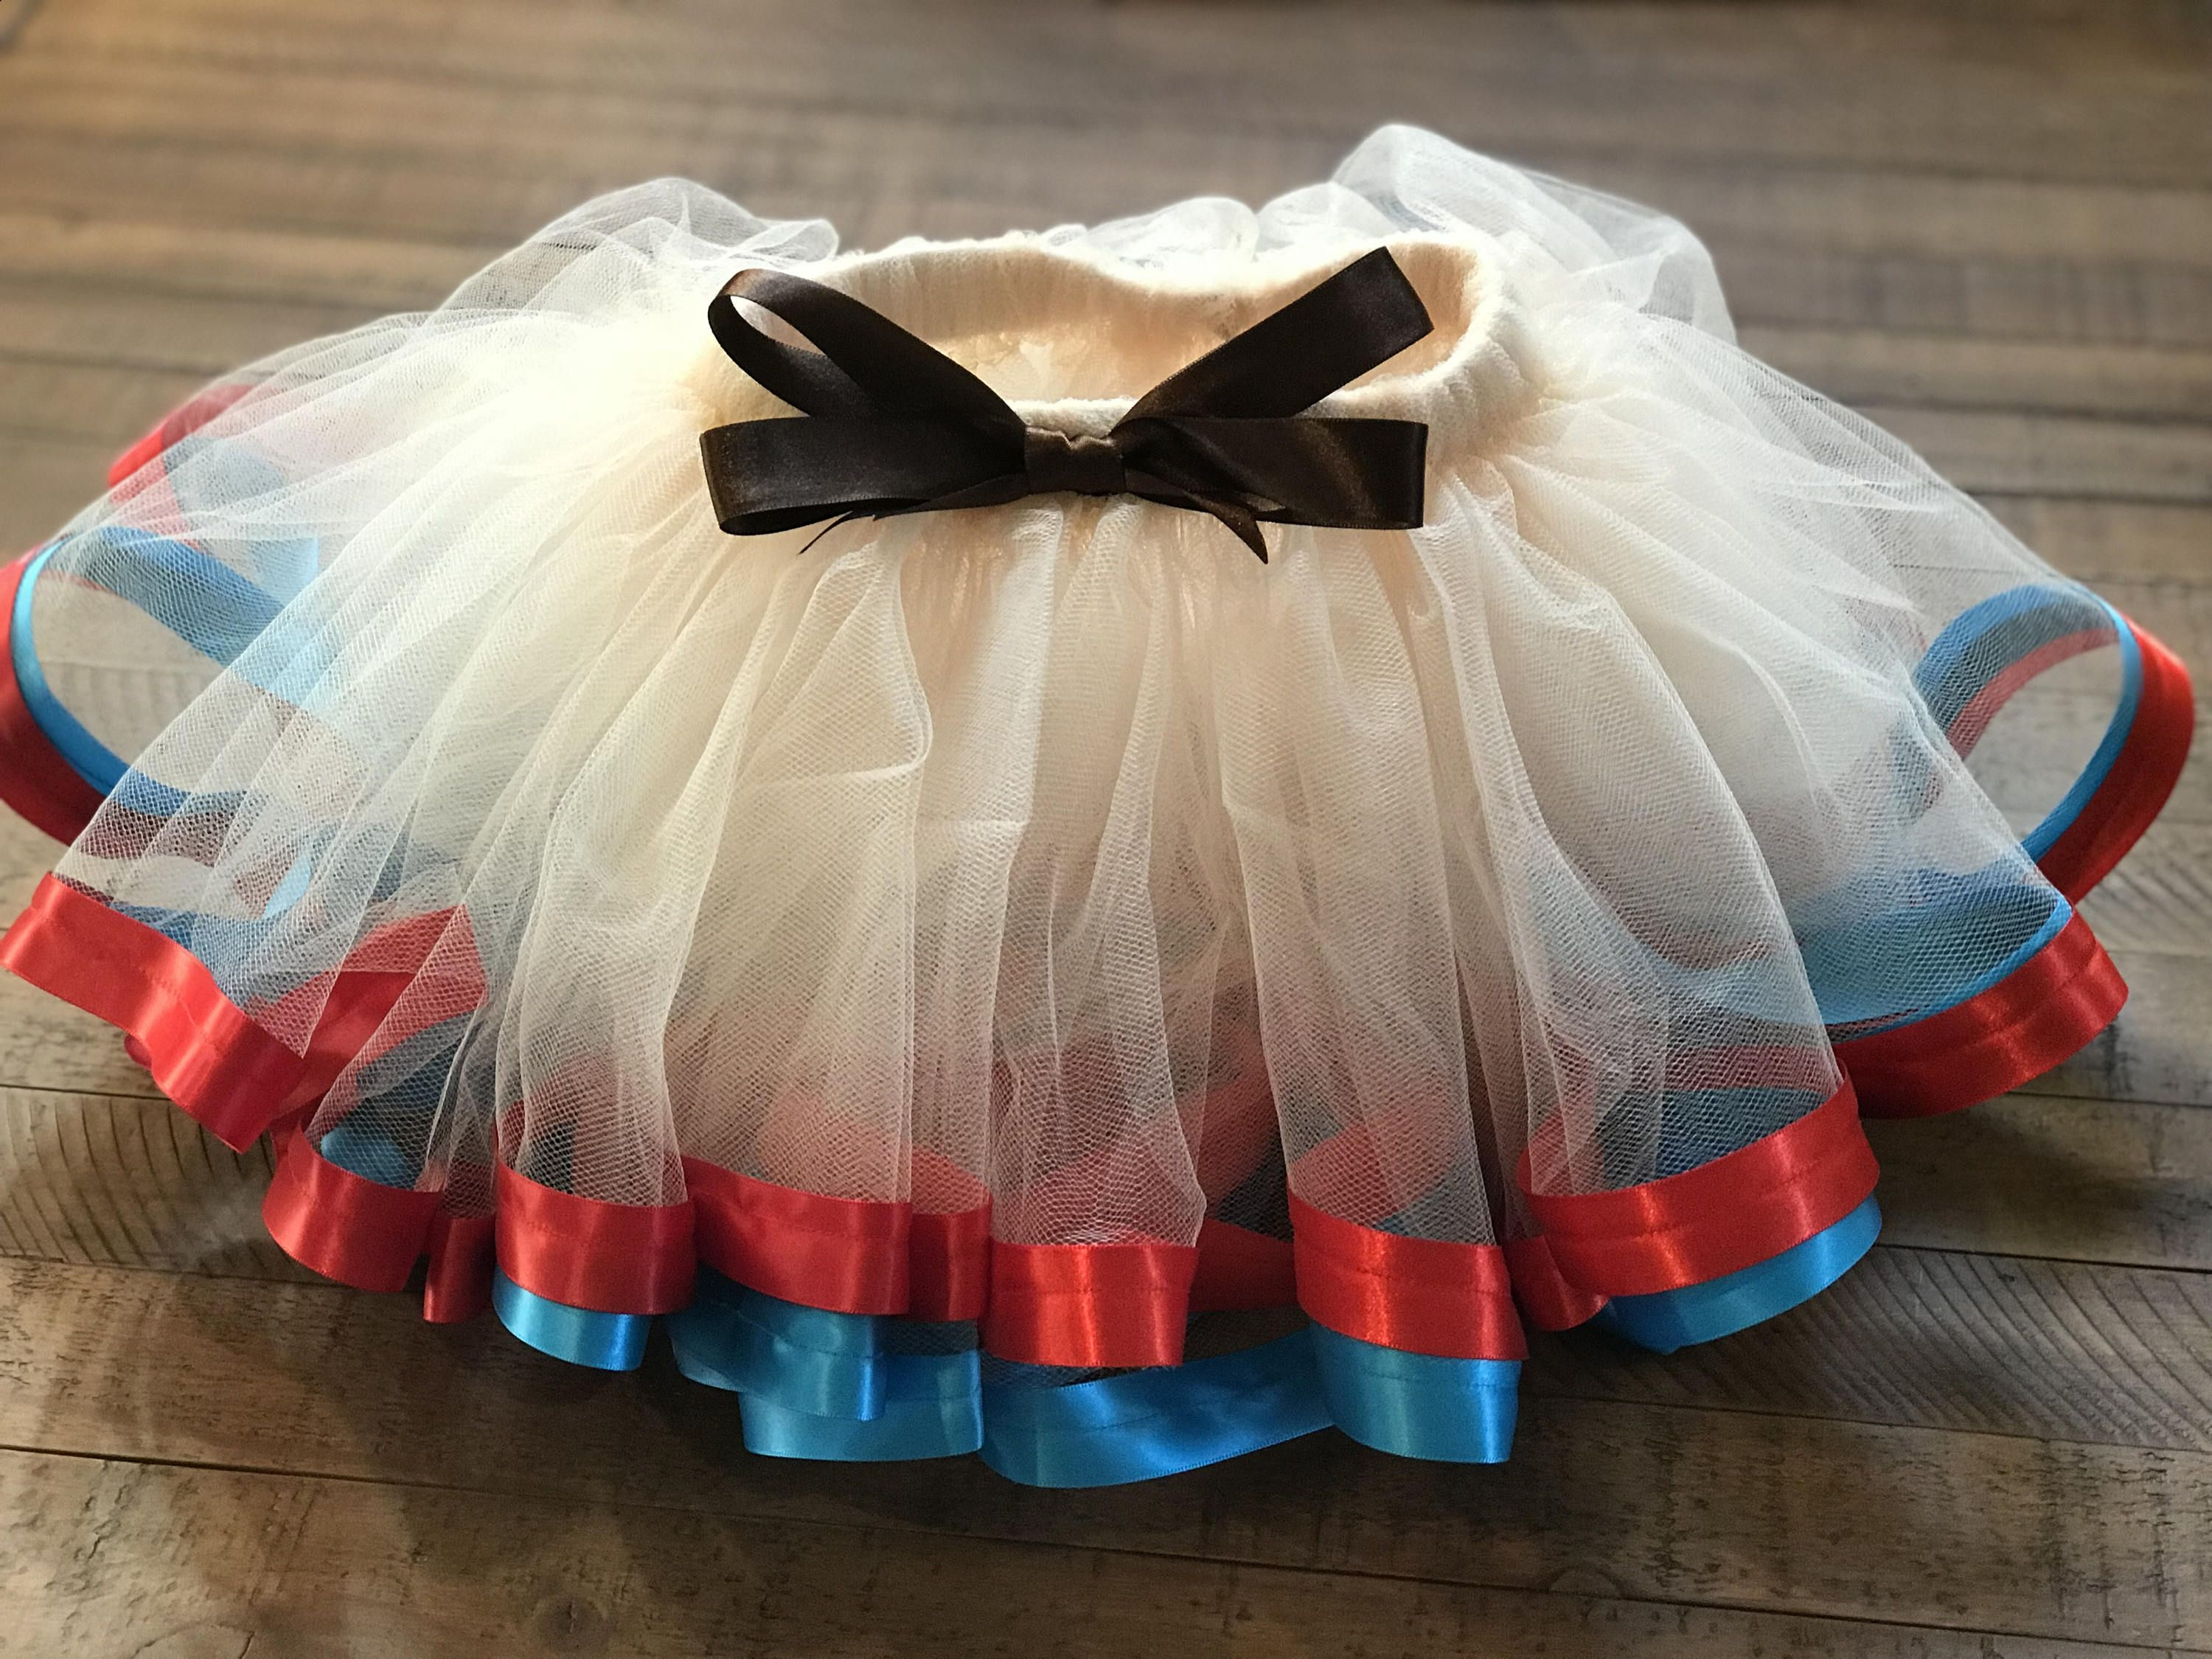 ee9e26ae4 Princess Moana Inspired Tutu/ Beige tulle tutu/teal and red ribbon/ brown  front bow by NandLTutus on Etsy